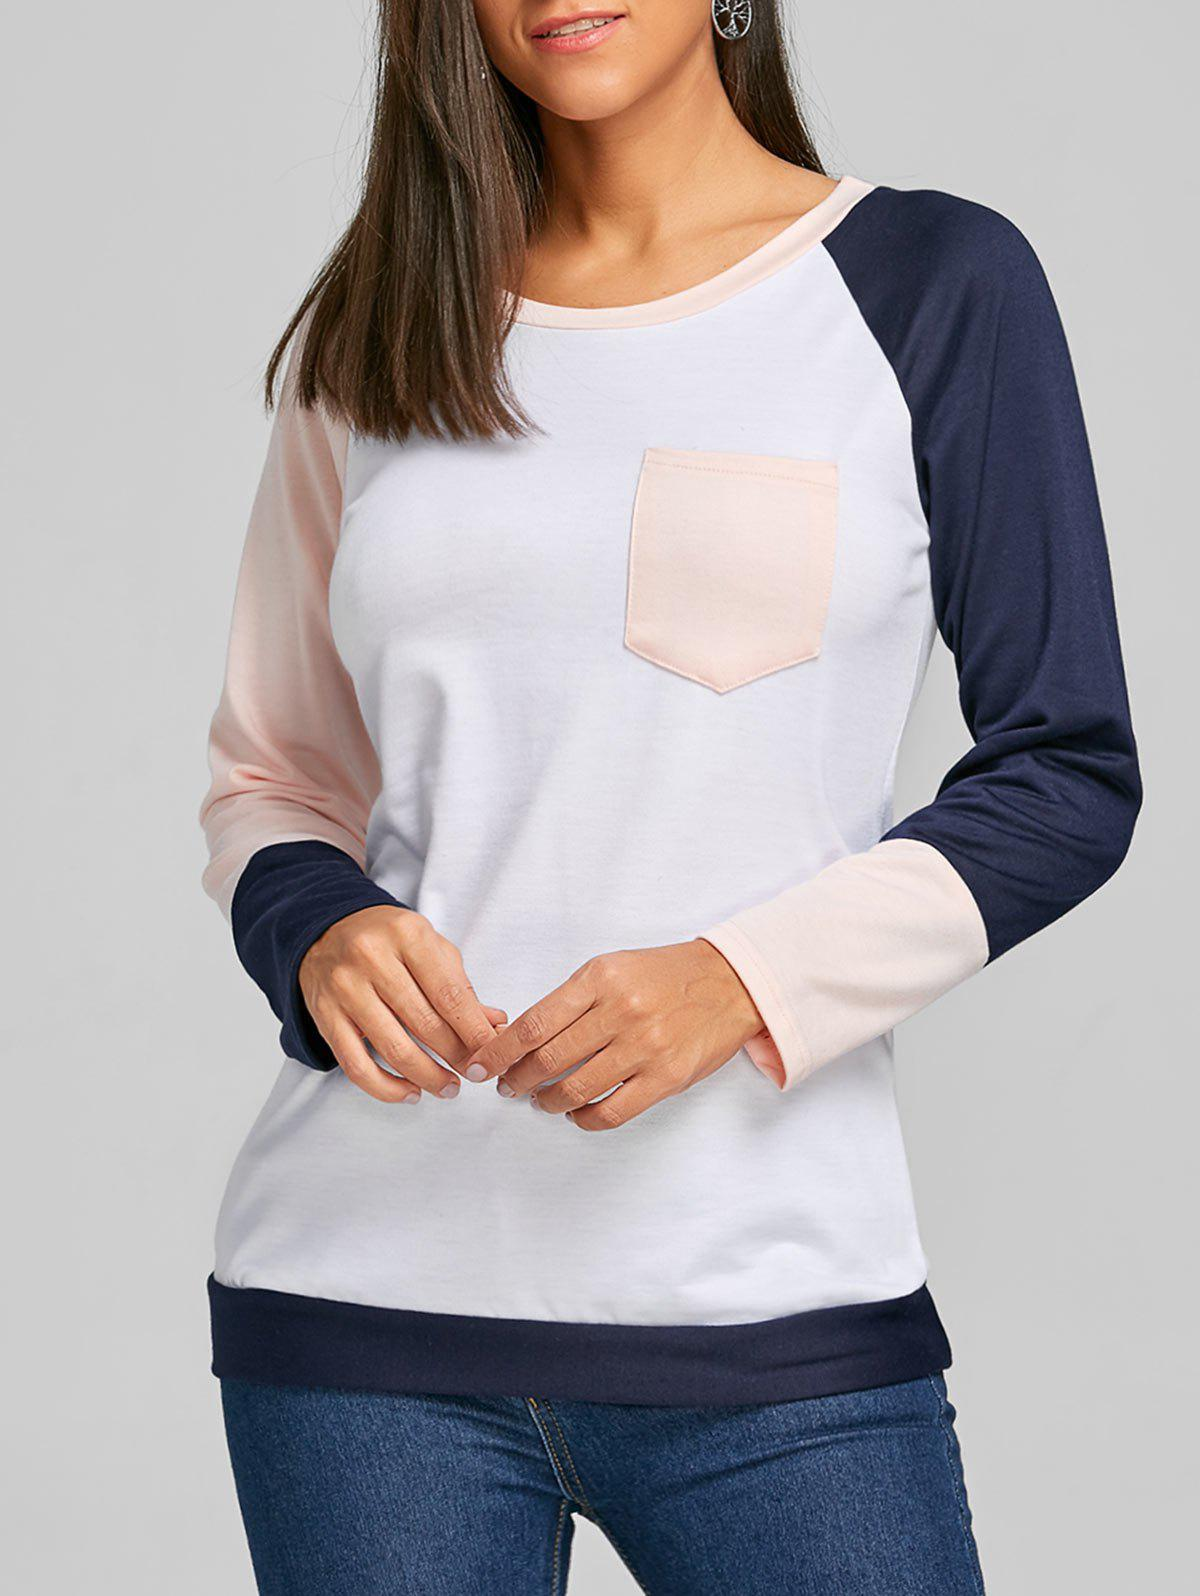 Raglan Long Sleeve Color Block Top - ORANGEPINK L